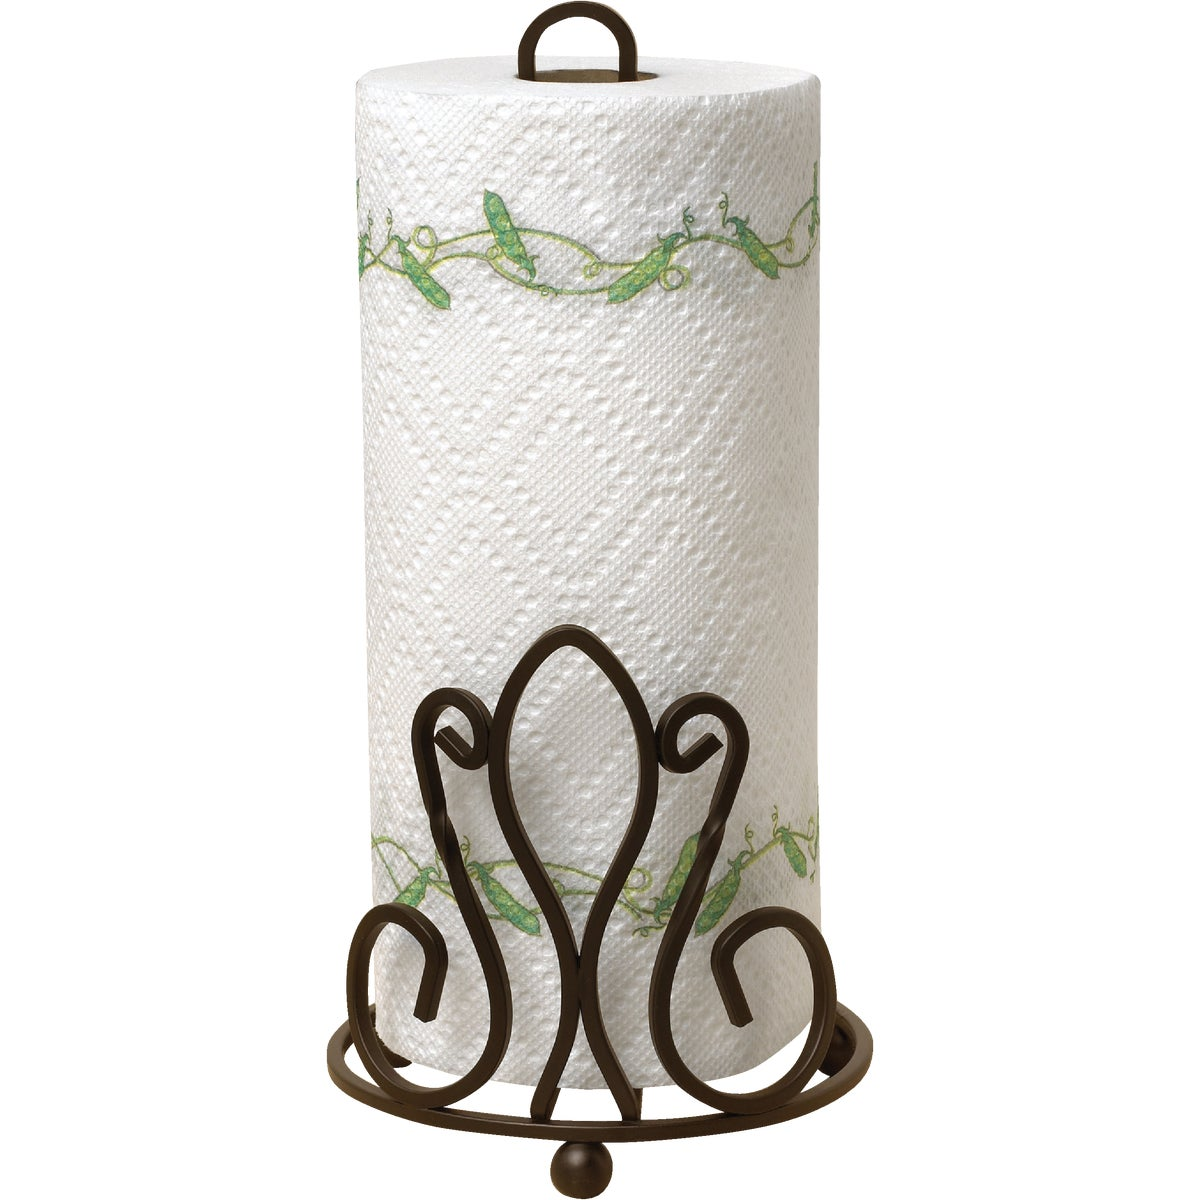 PATRICE P TOWEL HOLDER